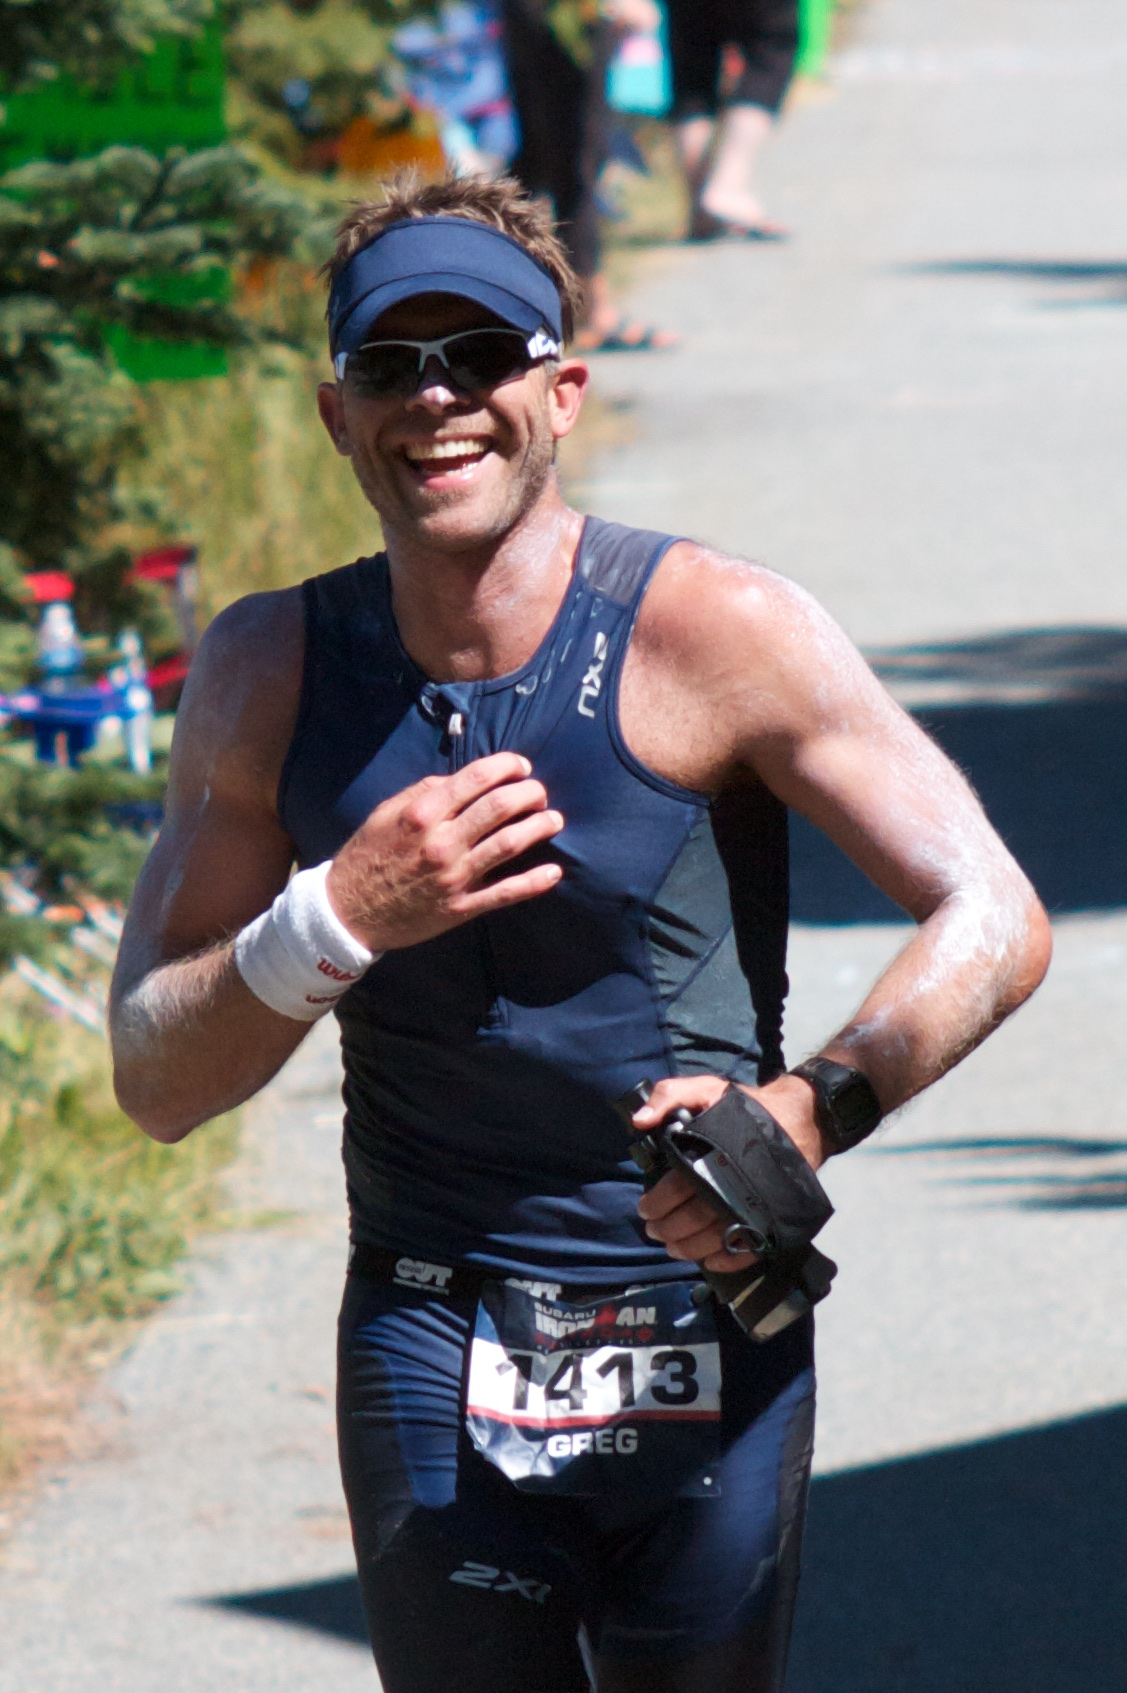 My training buddy Greg at Ironman Canada;stoked to see us cheering!